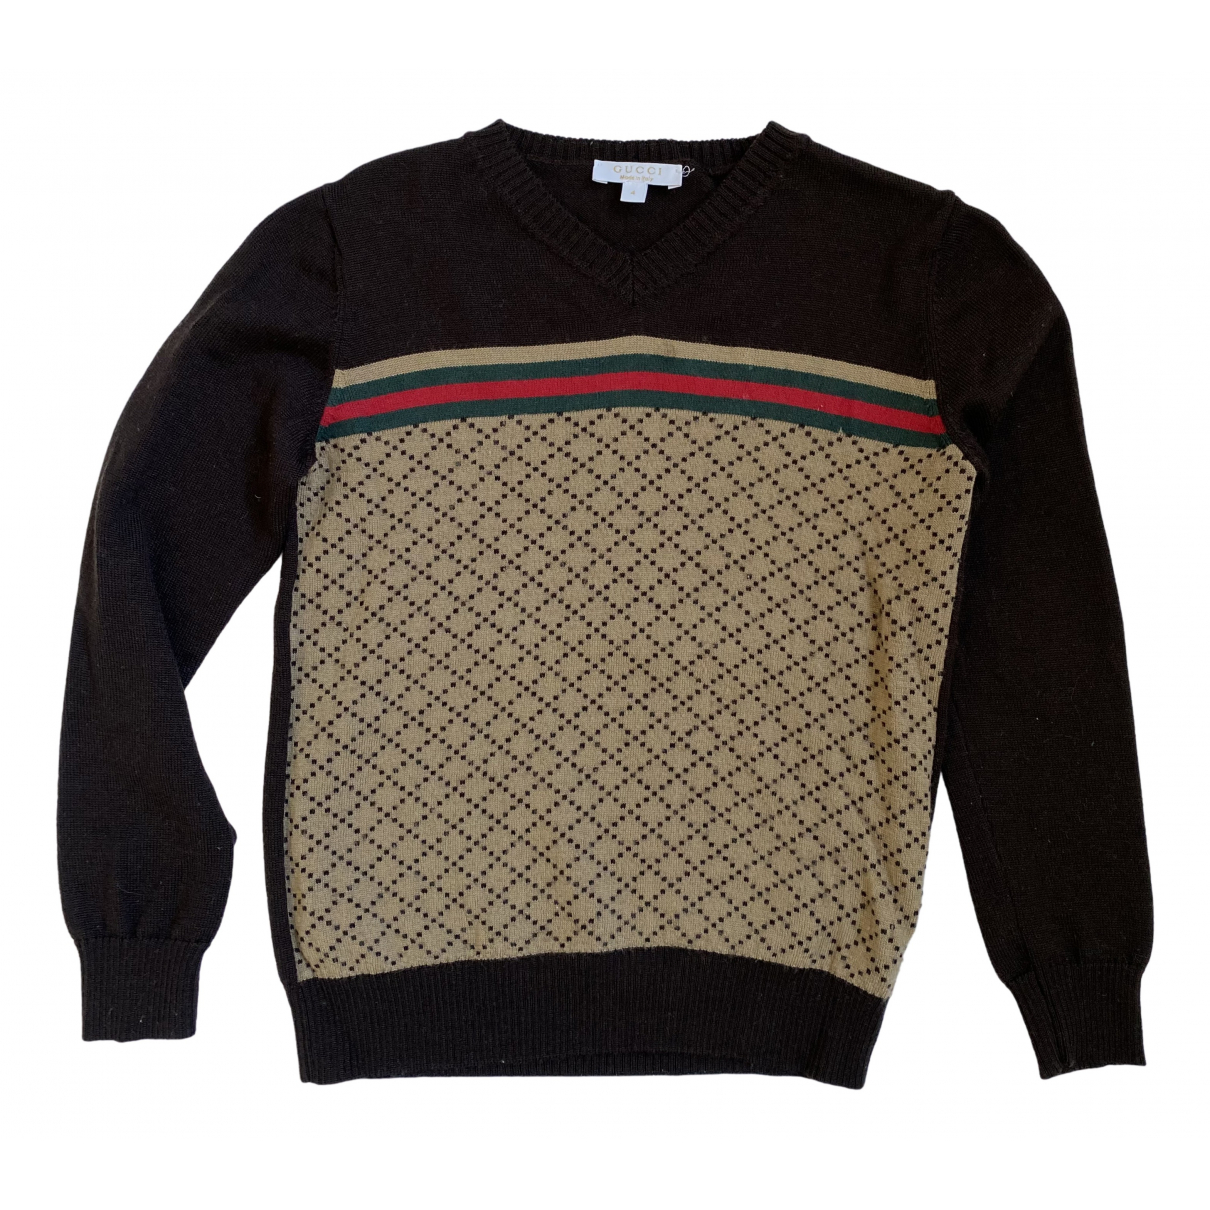 Gucci N Brown Wool Knitwear for Kids 4 years - up to 102cm FR